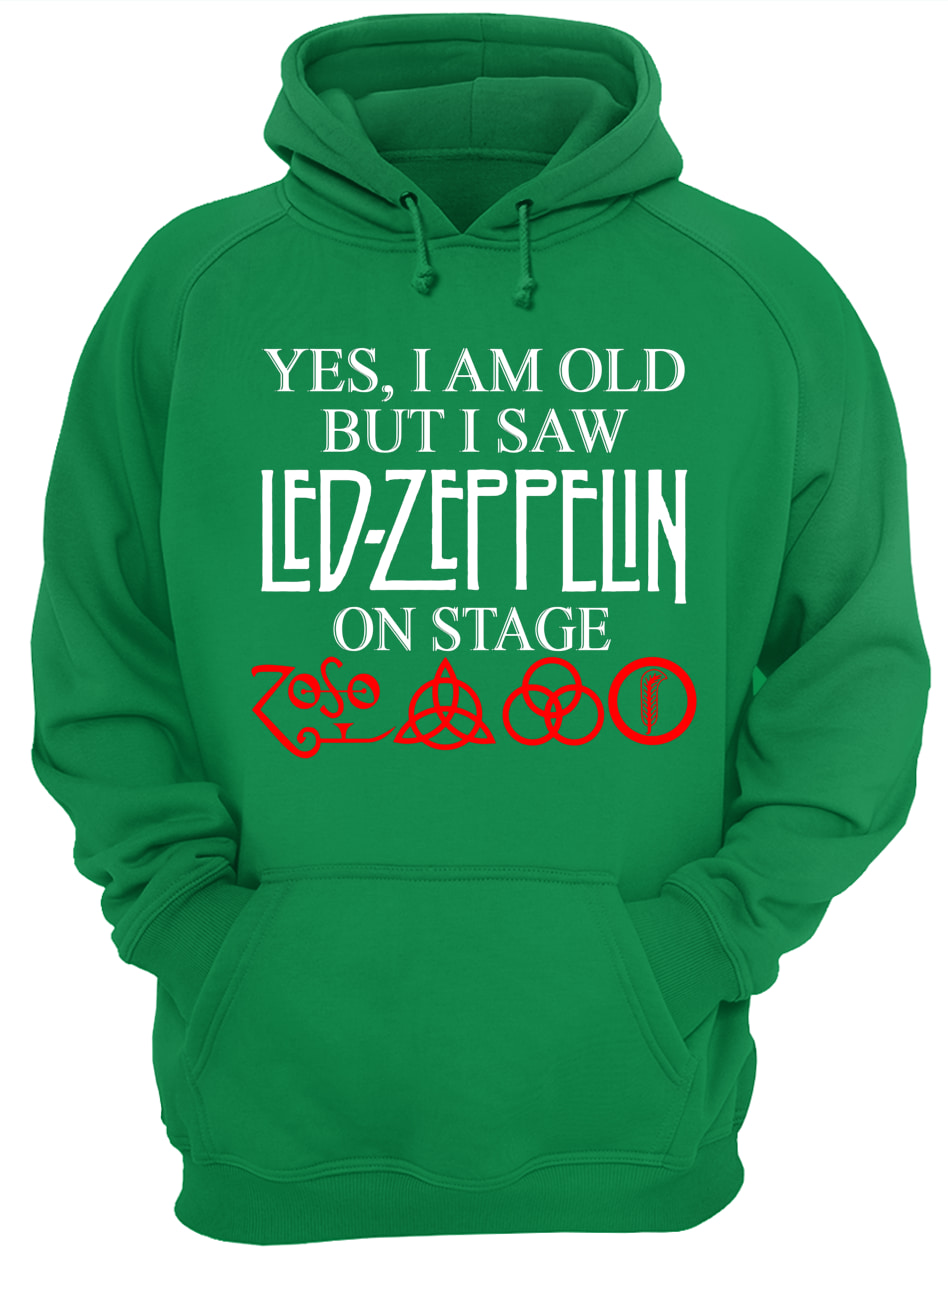 Yes i am old but i saw led-zeppelin on stage hoodie